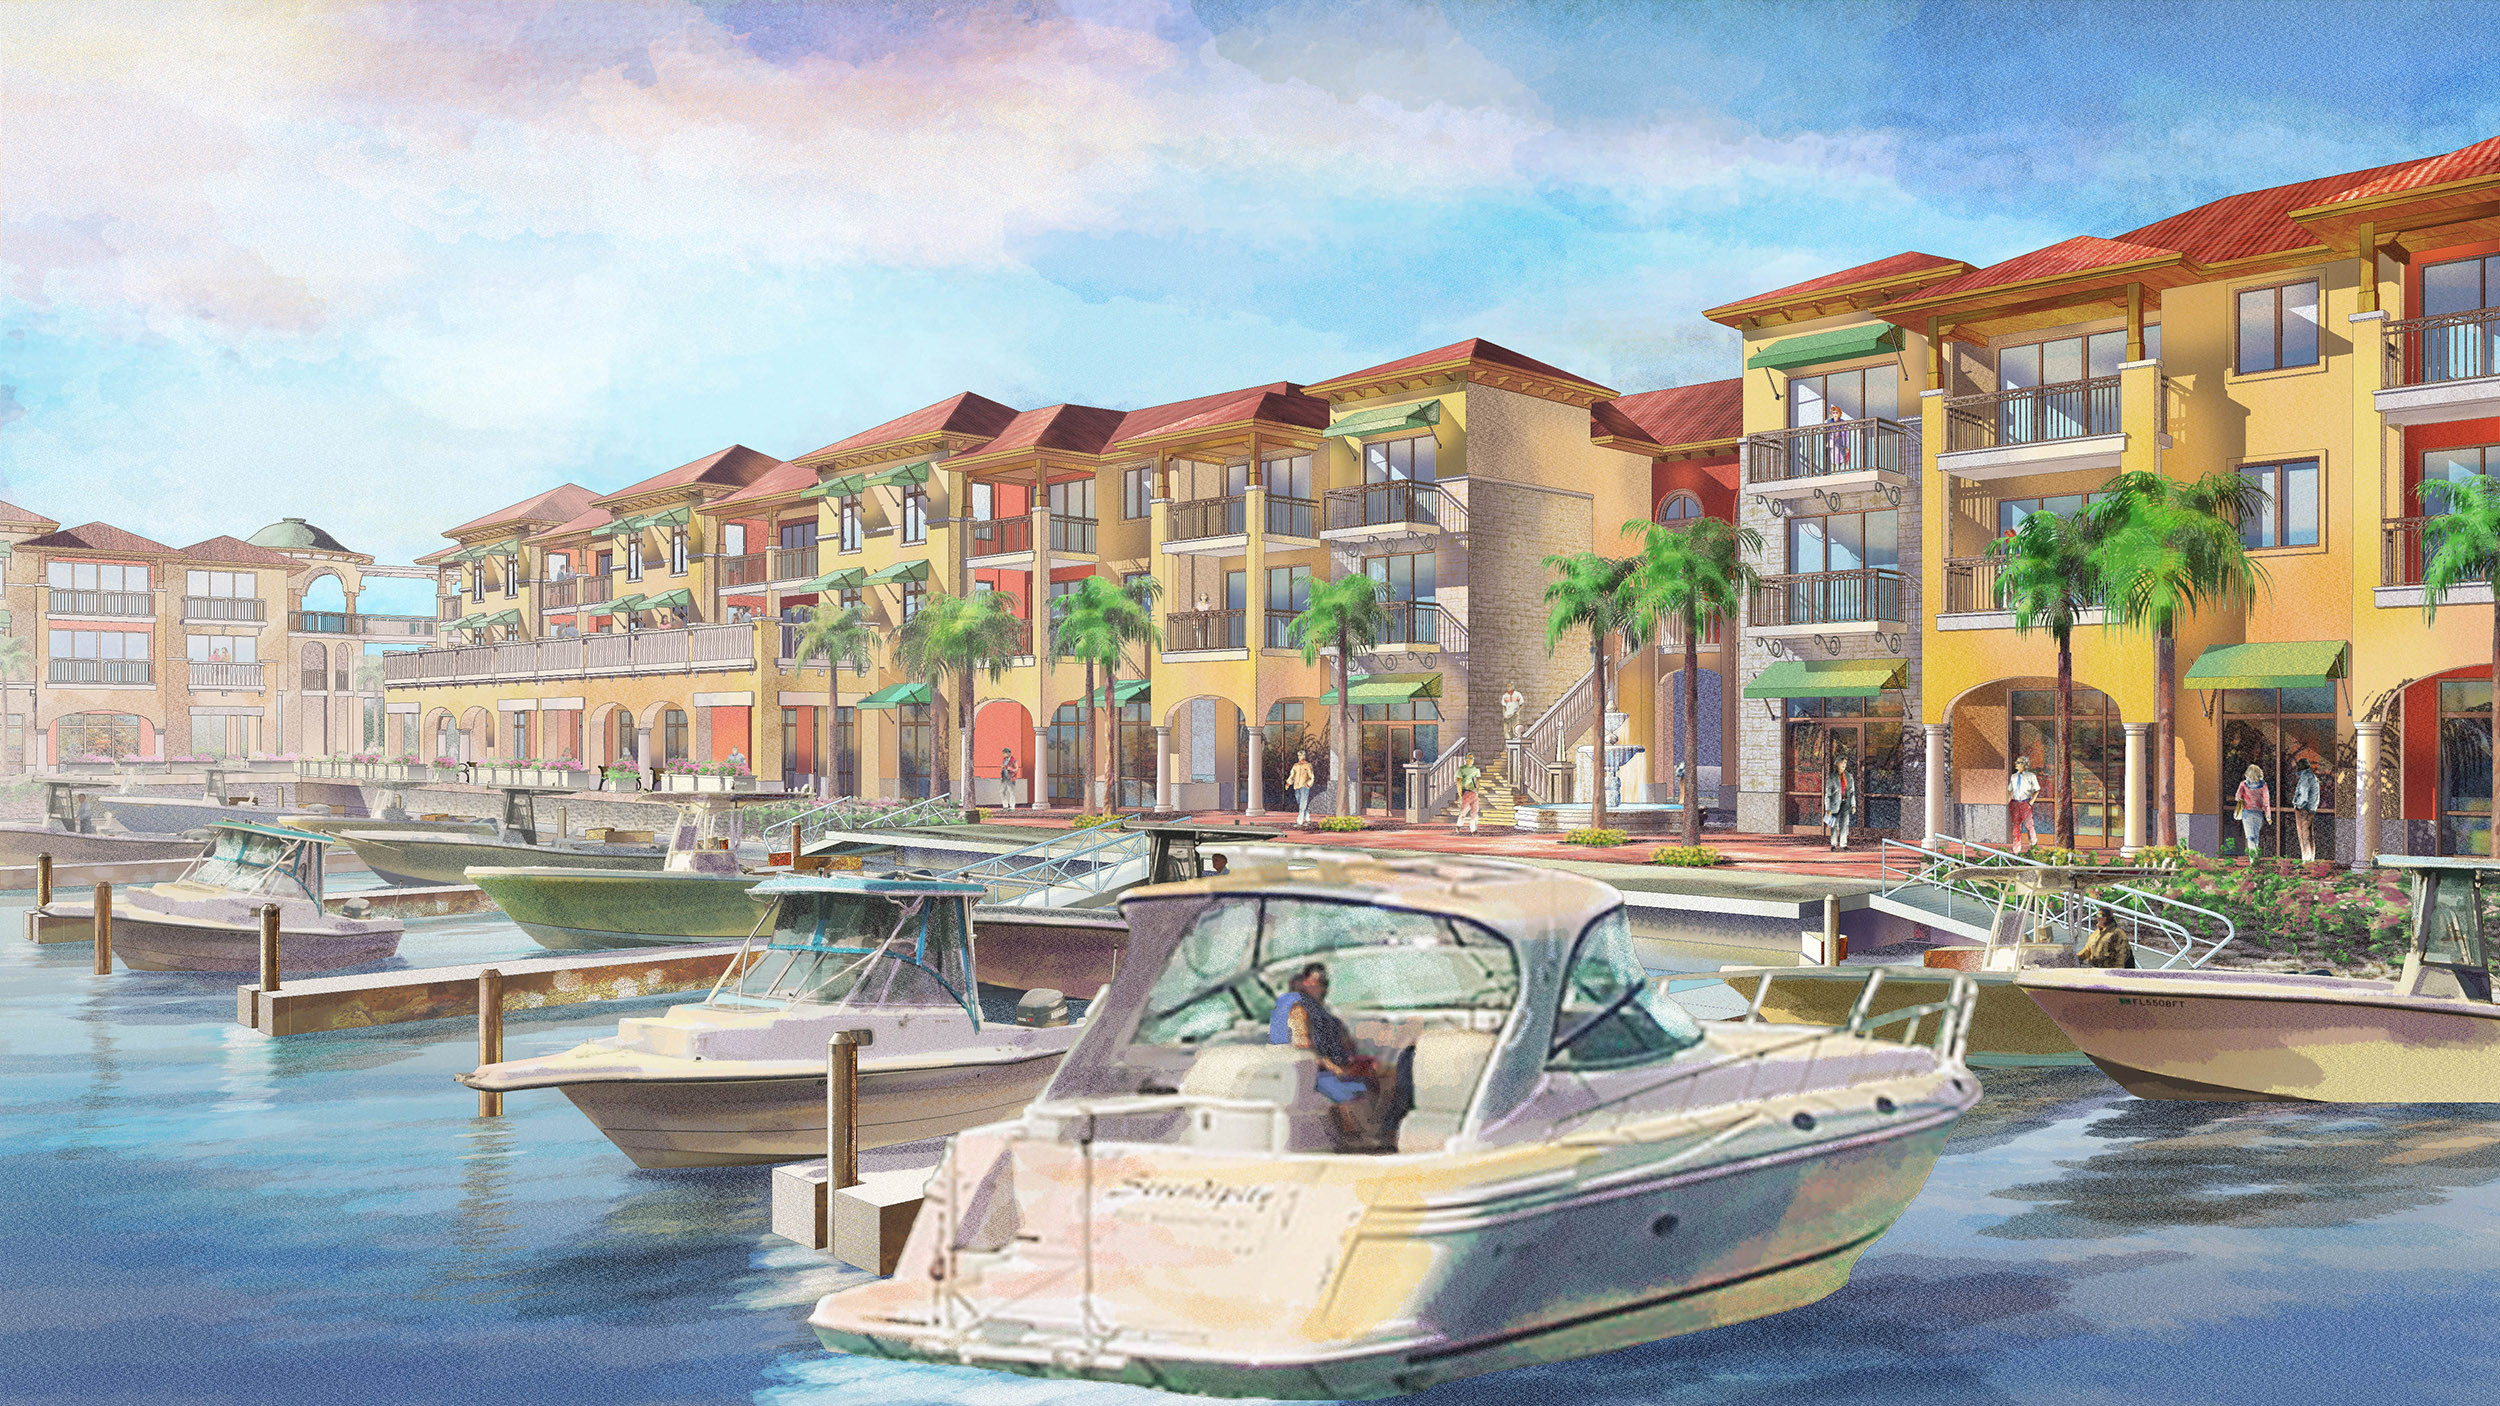 Naples Bay Resort Exterior Rendering.jpg